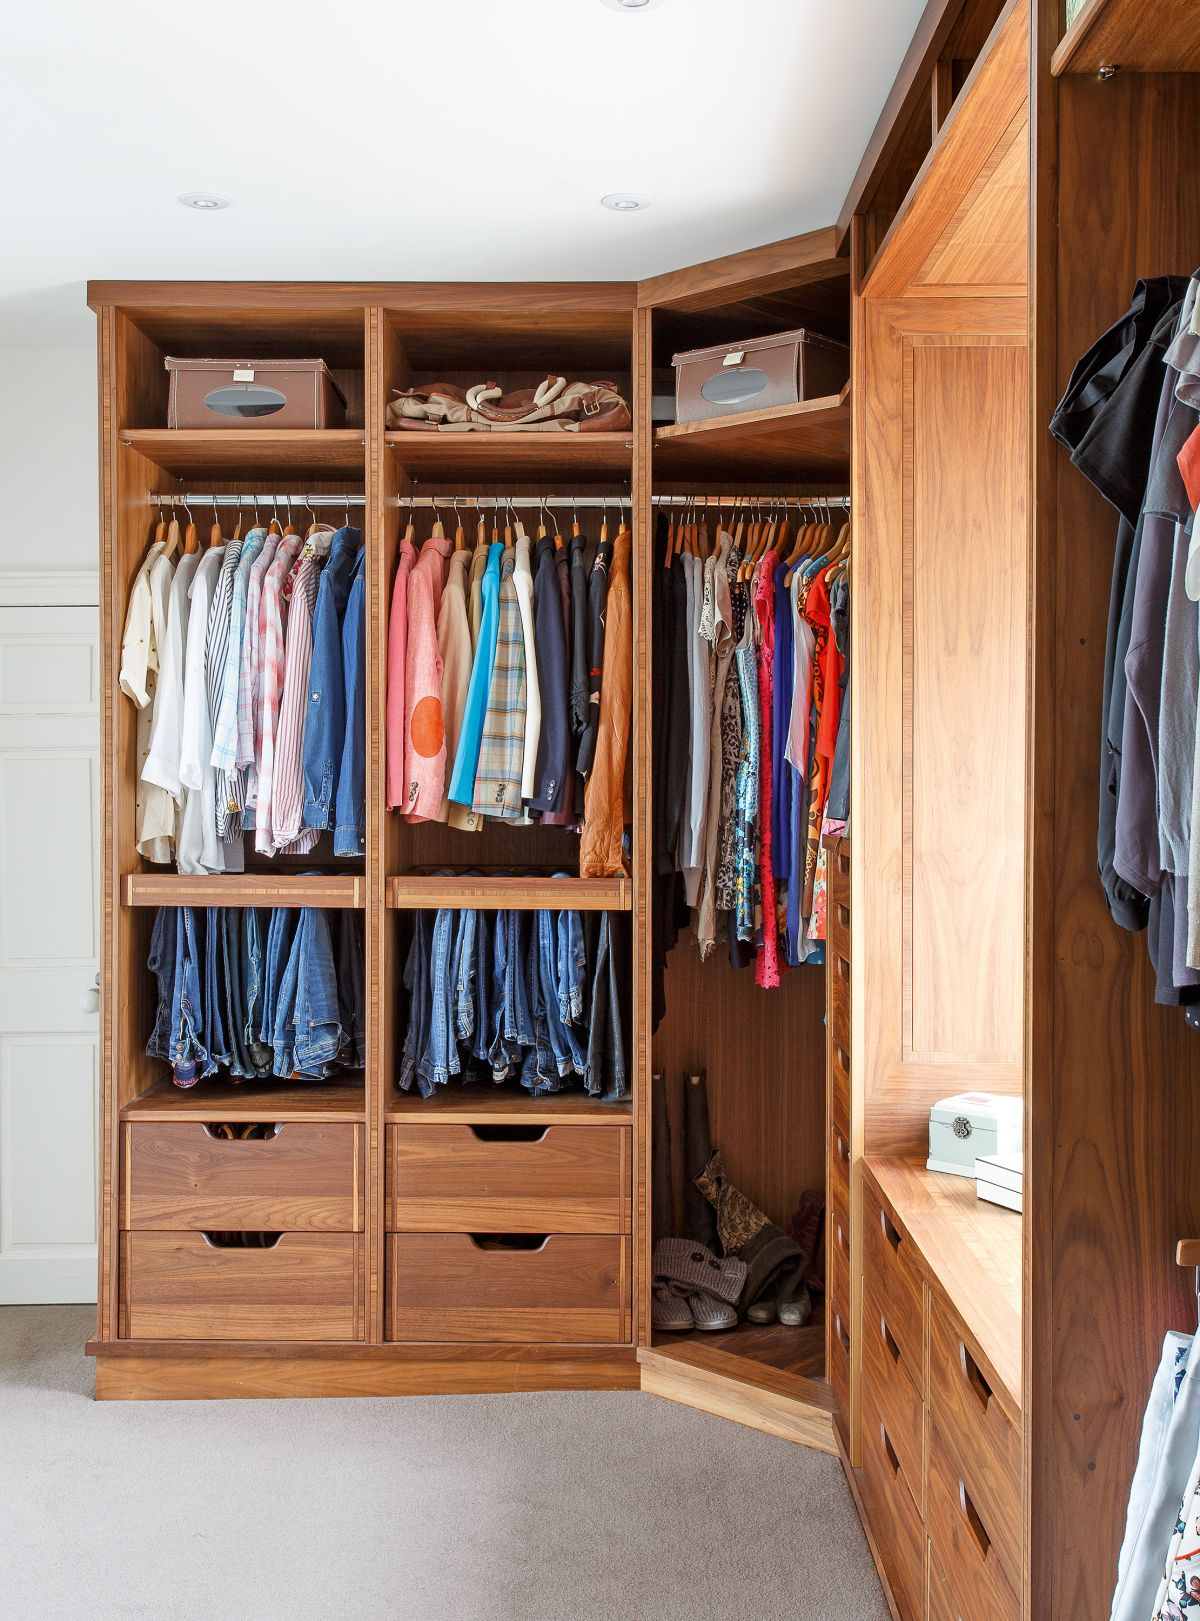 Dressing room ideas: 16 ways to create a walk-in wardrobe